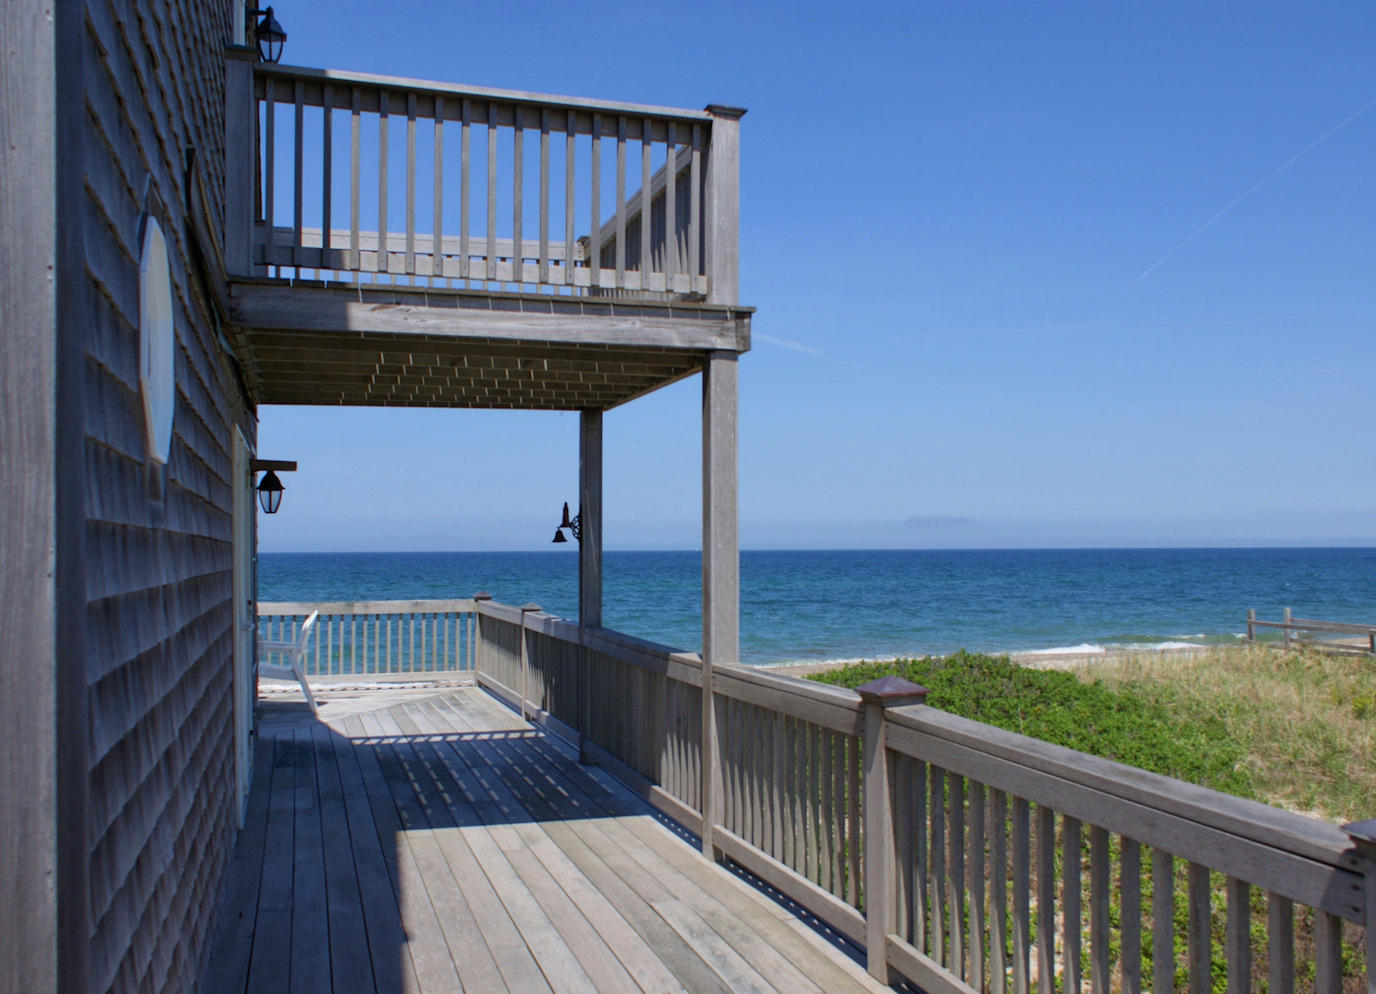 Enjoy views from decks on both levels